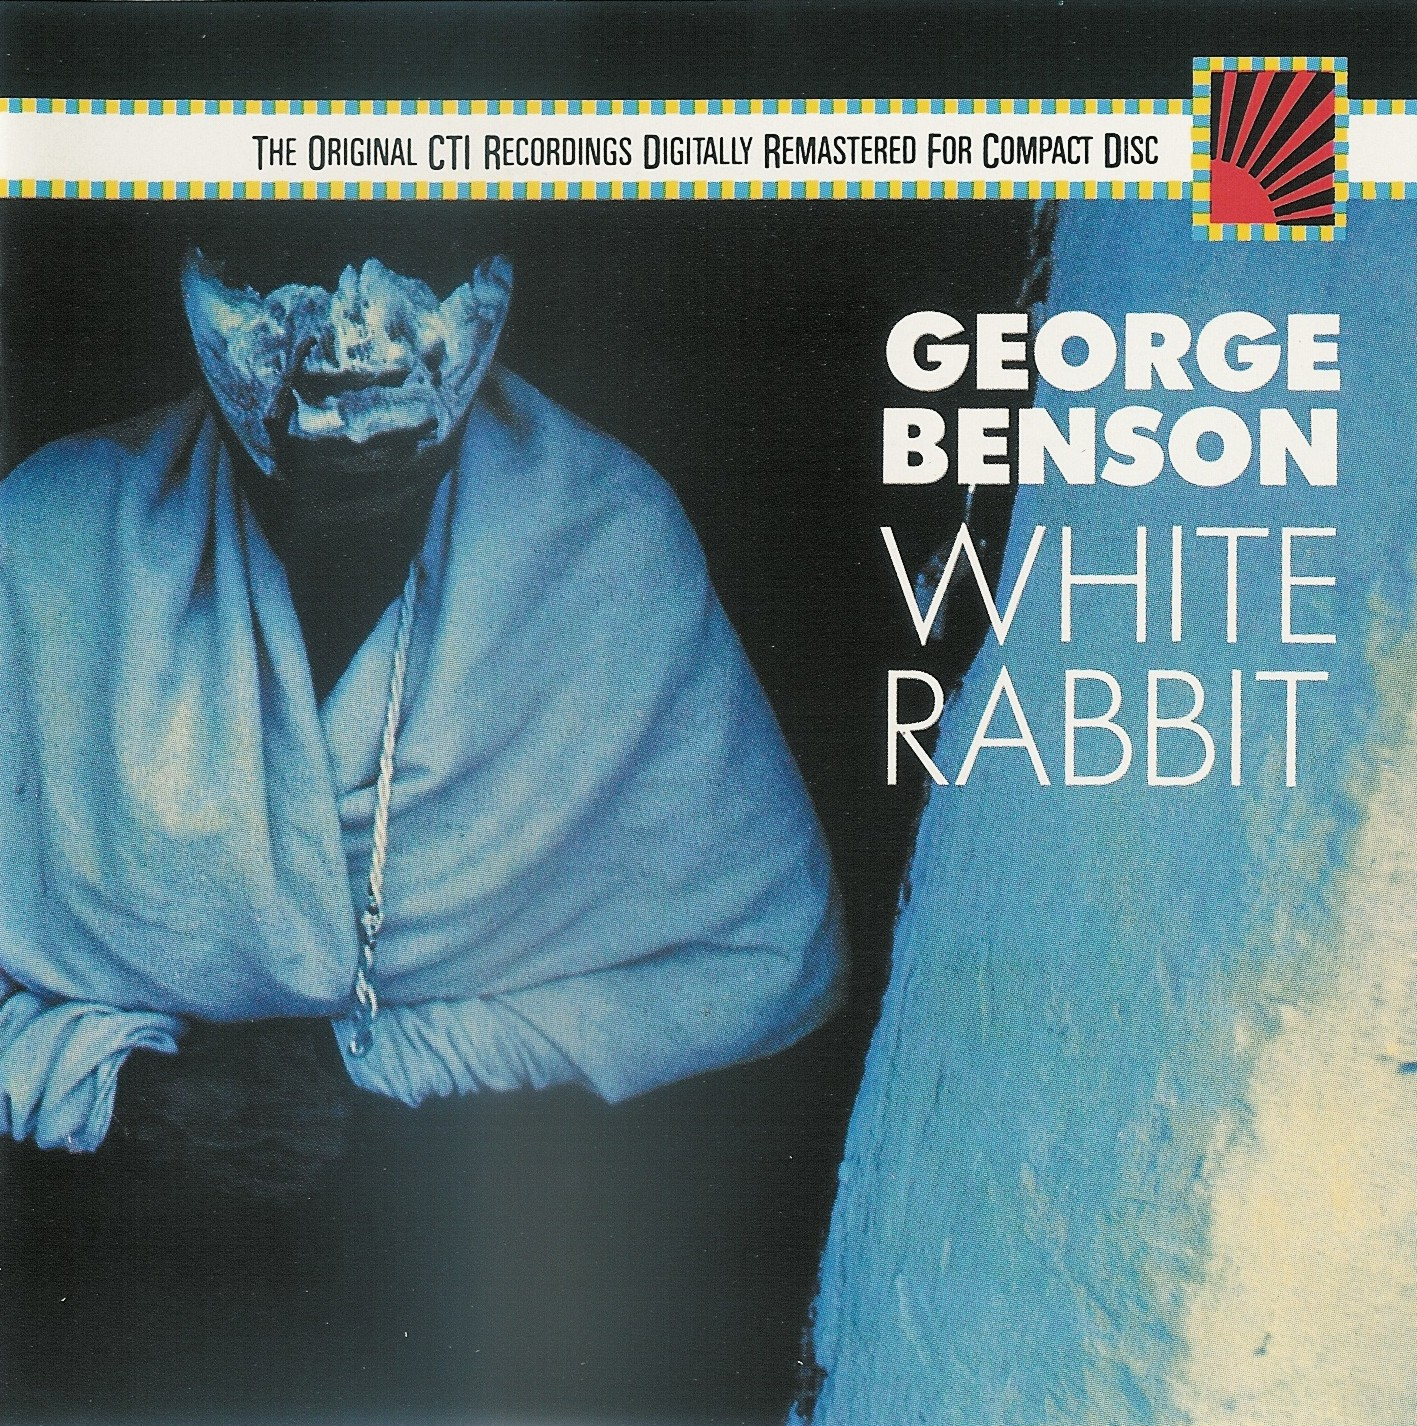 George Benson - White Rabbit - Front